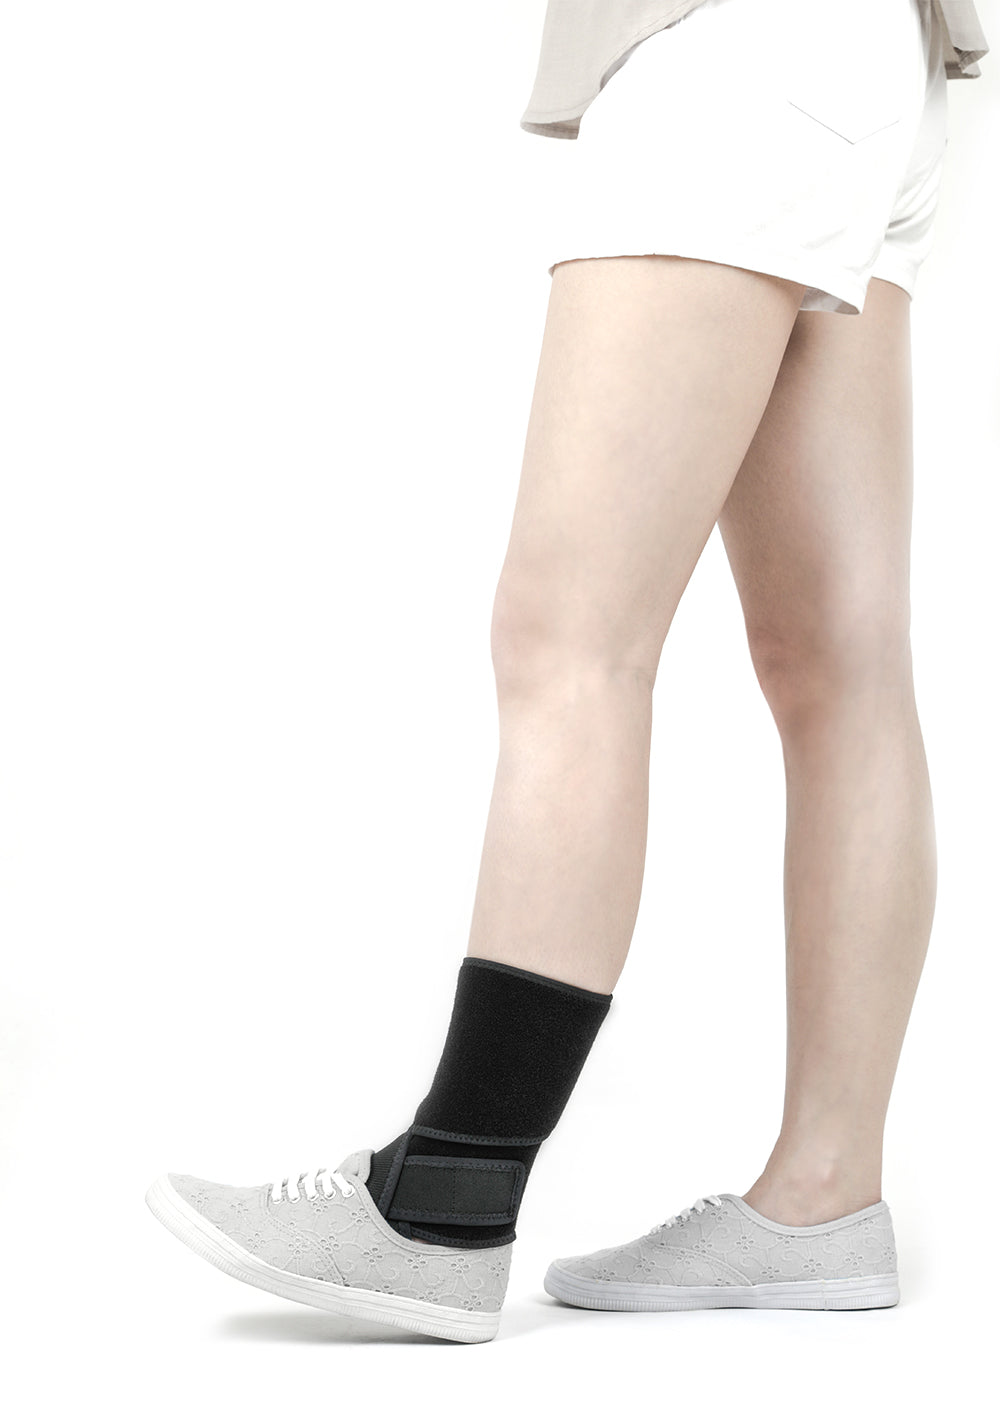 Neofect Drop Foot Brace